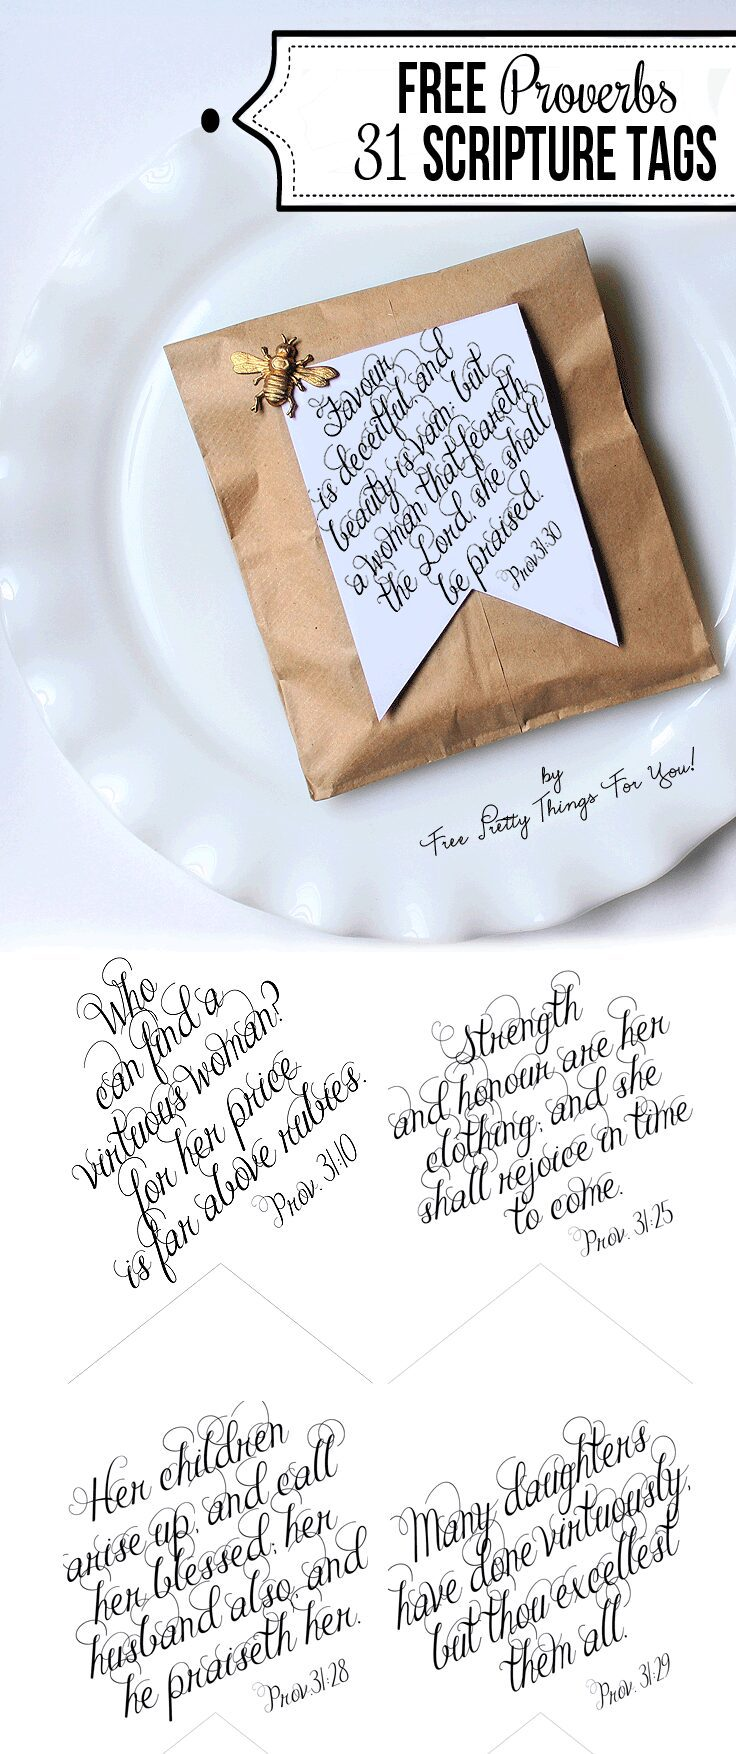 proverbs-31-free-scripture-church-printable-tags-by-FPTFY-1